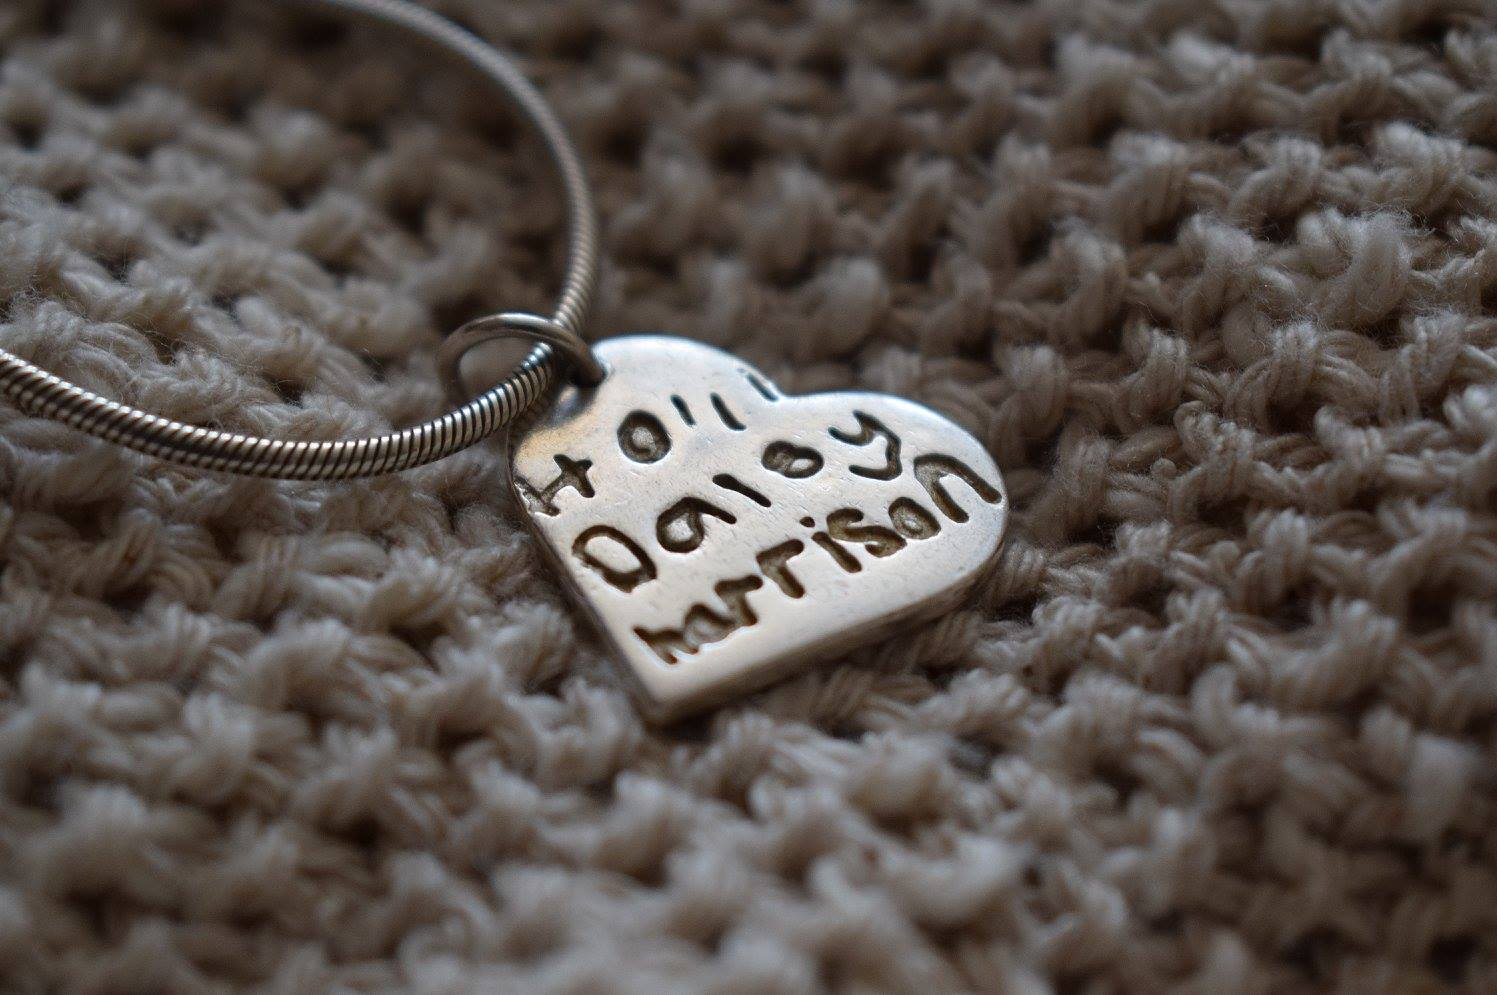 childrens name inscribed on a silver necklace charm